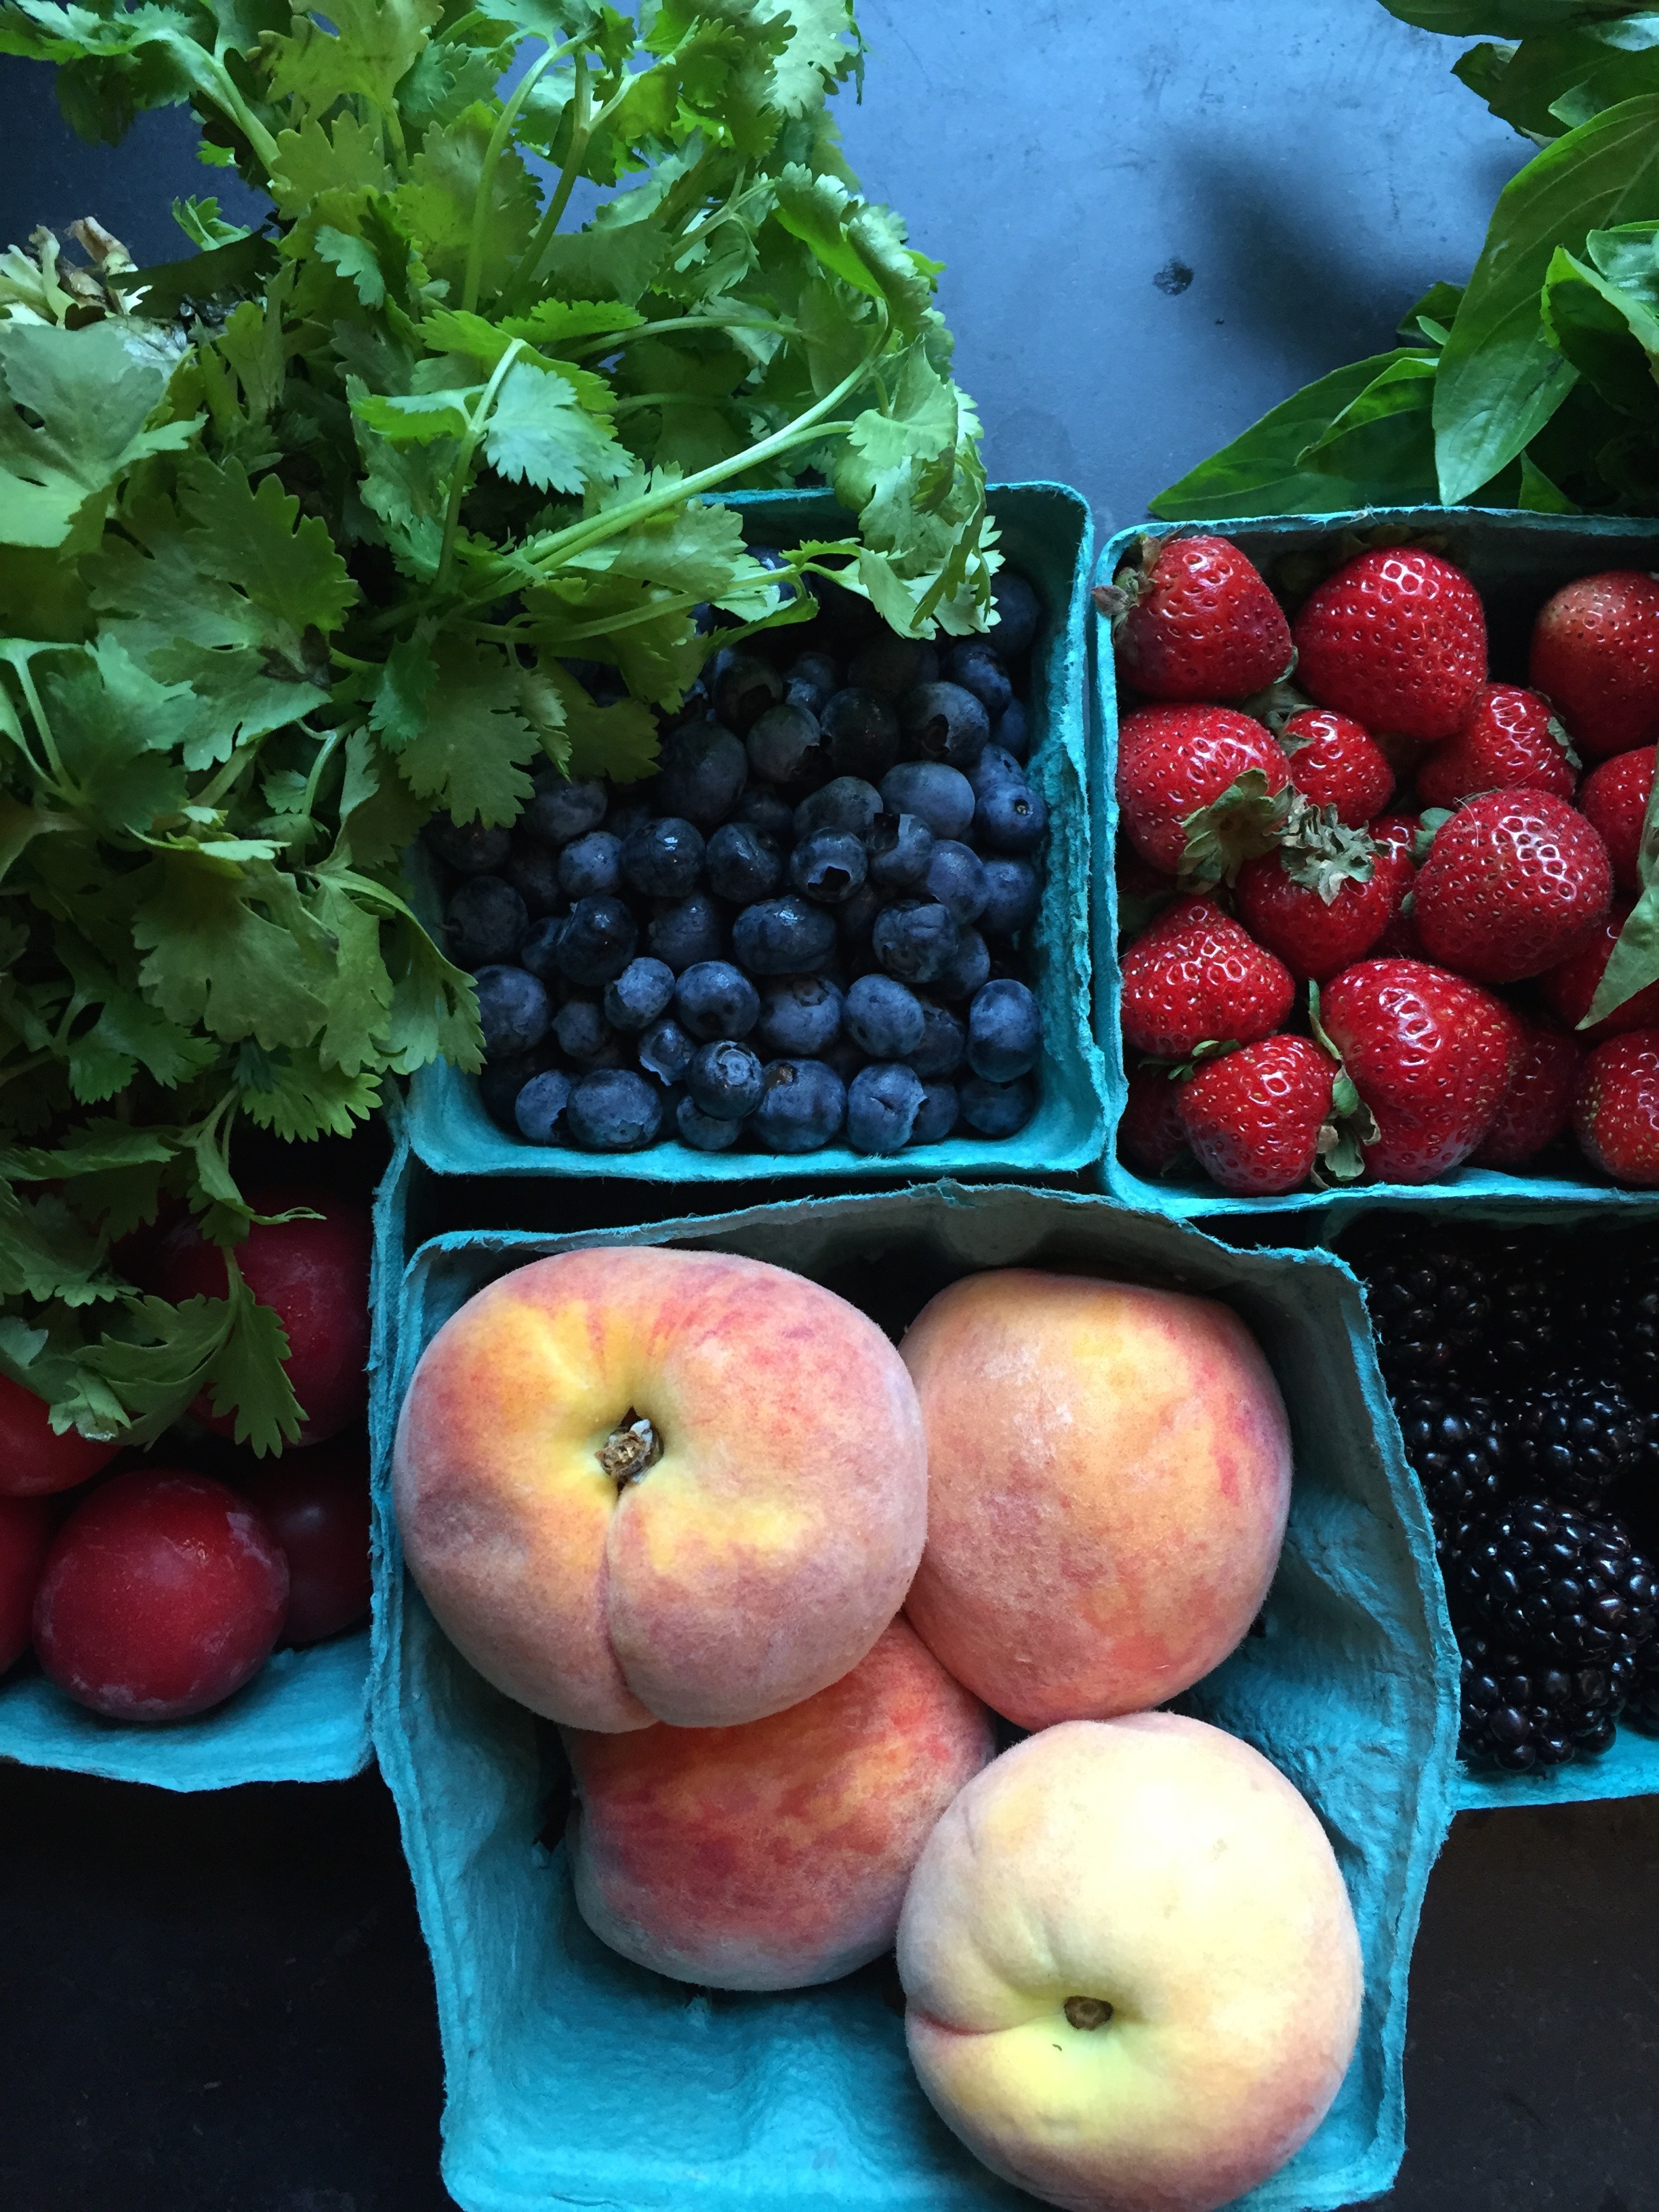 Cilantro, blueberries, everbearing strawberries, blackberries, basil, peaches and plums.